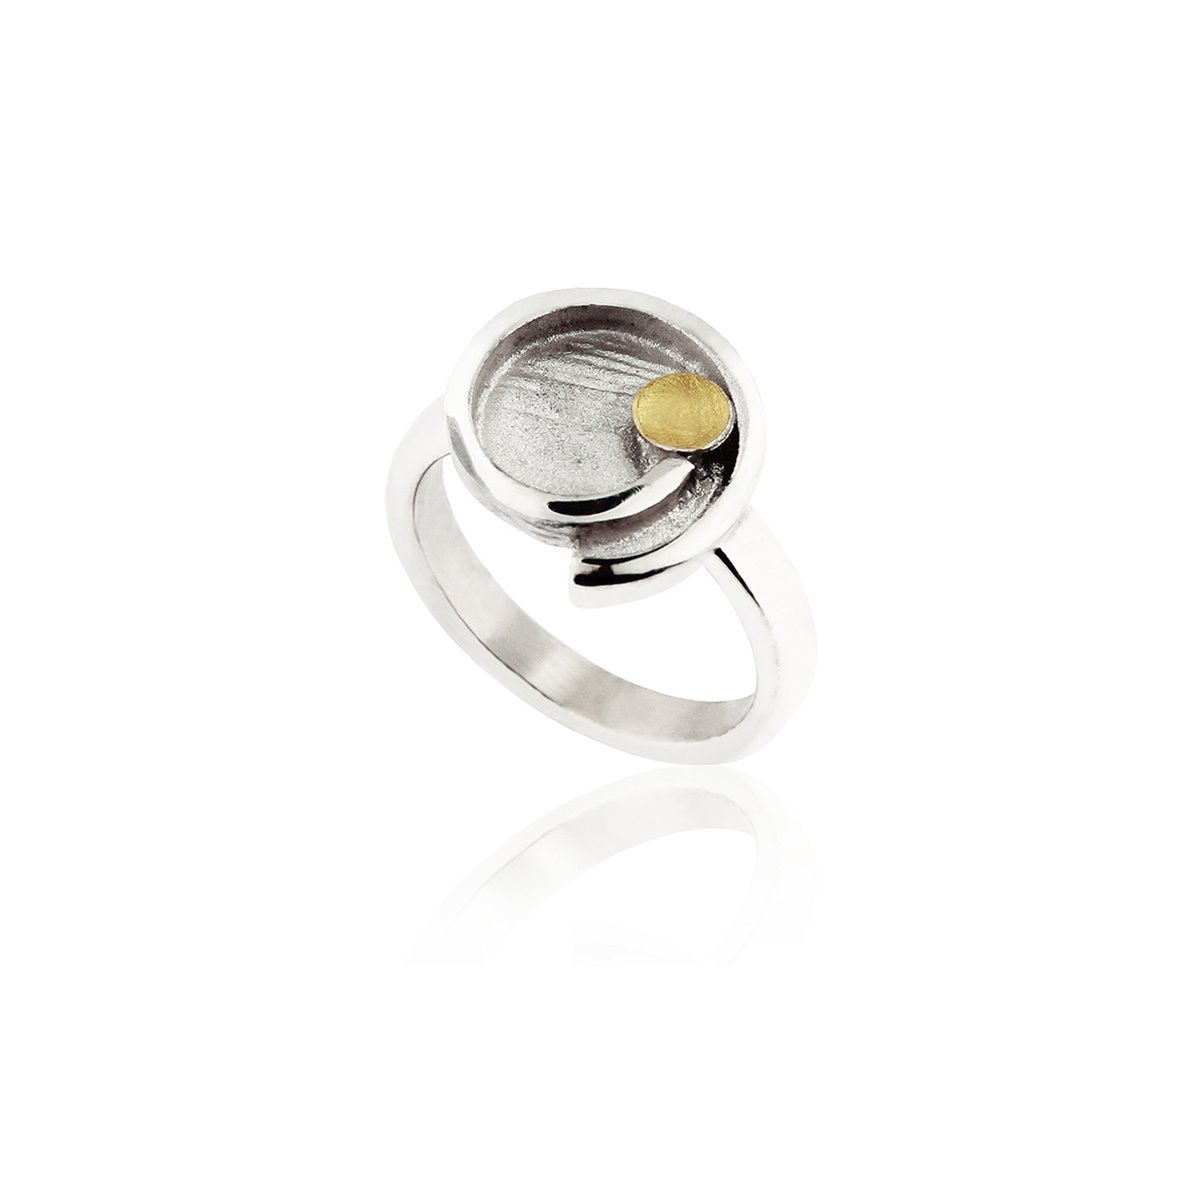 SILVER & GOLD RING . R1900